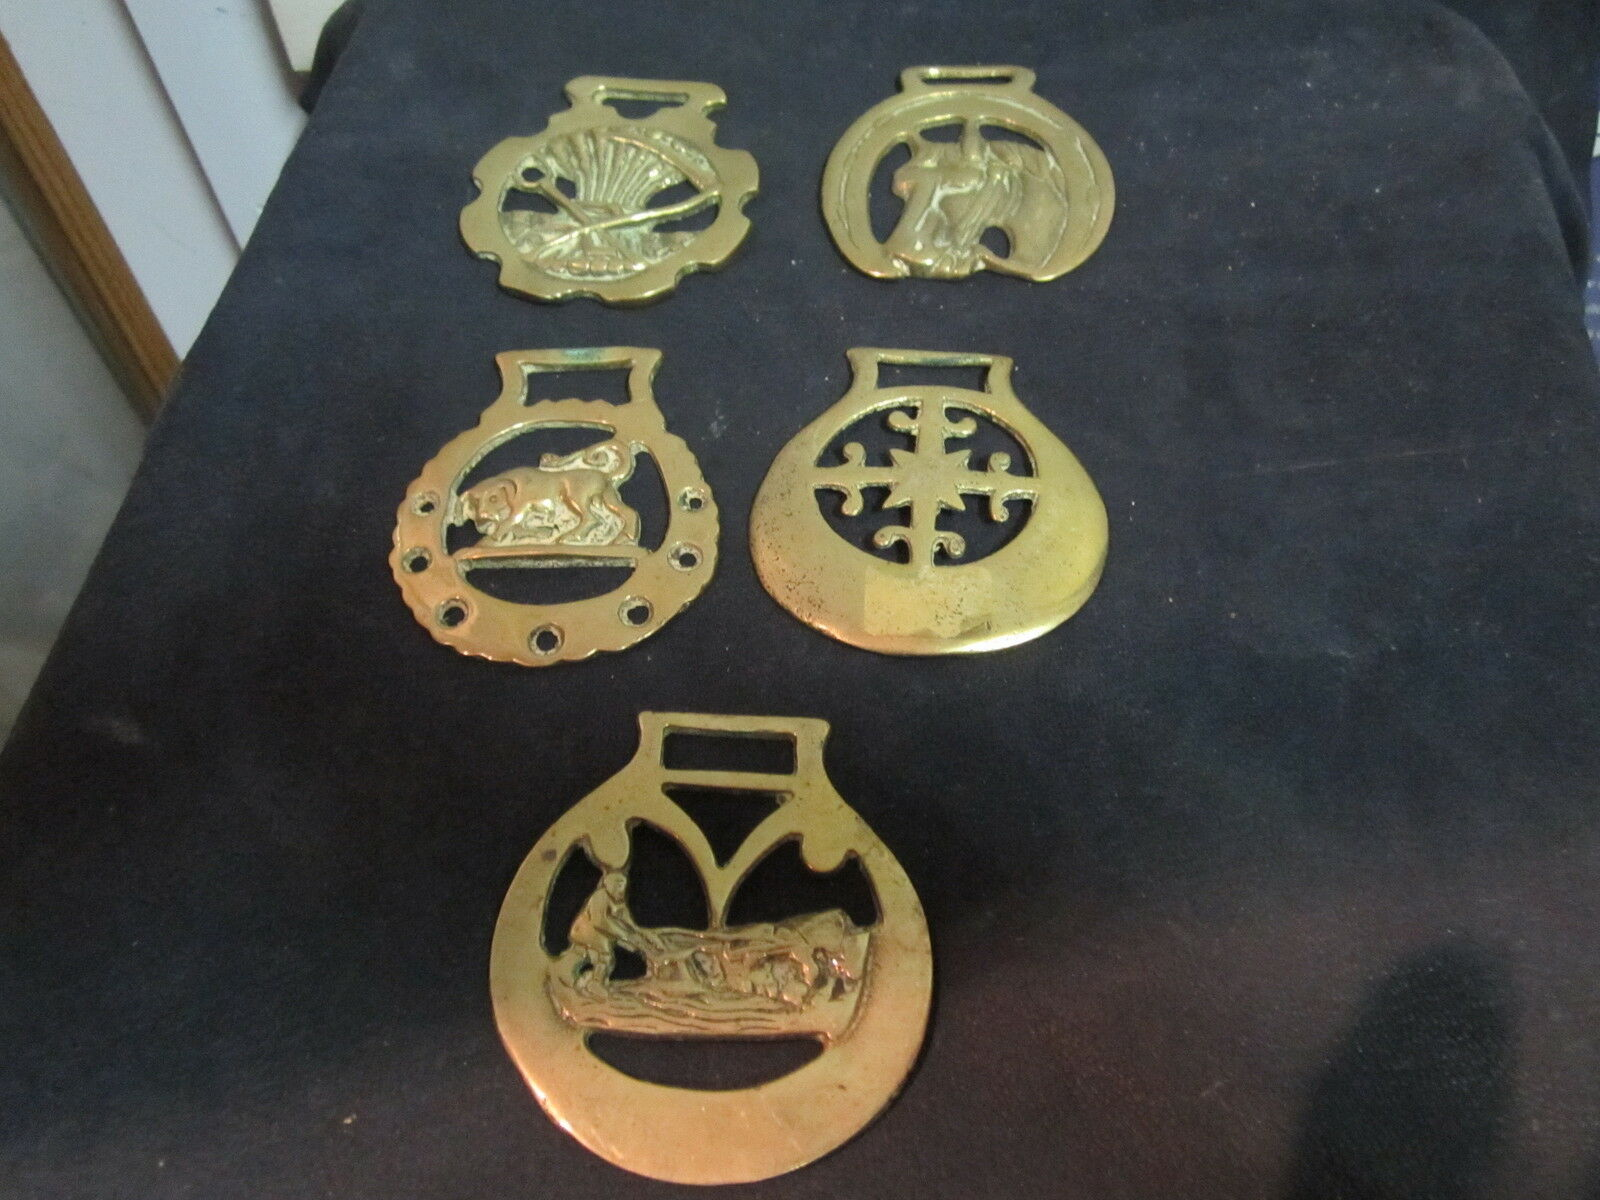 Saddle buckles 6 antique brass